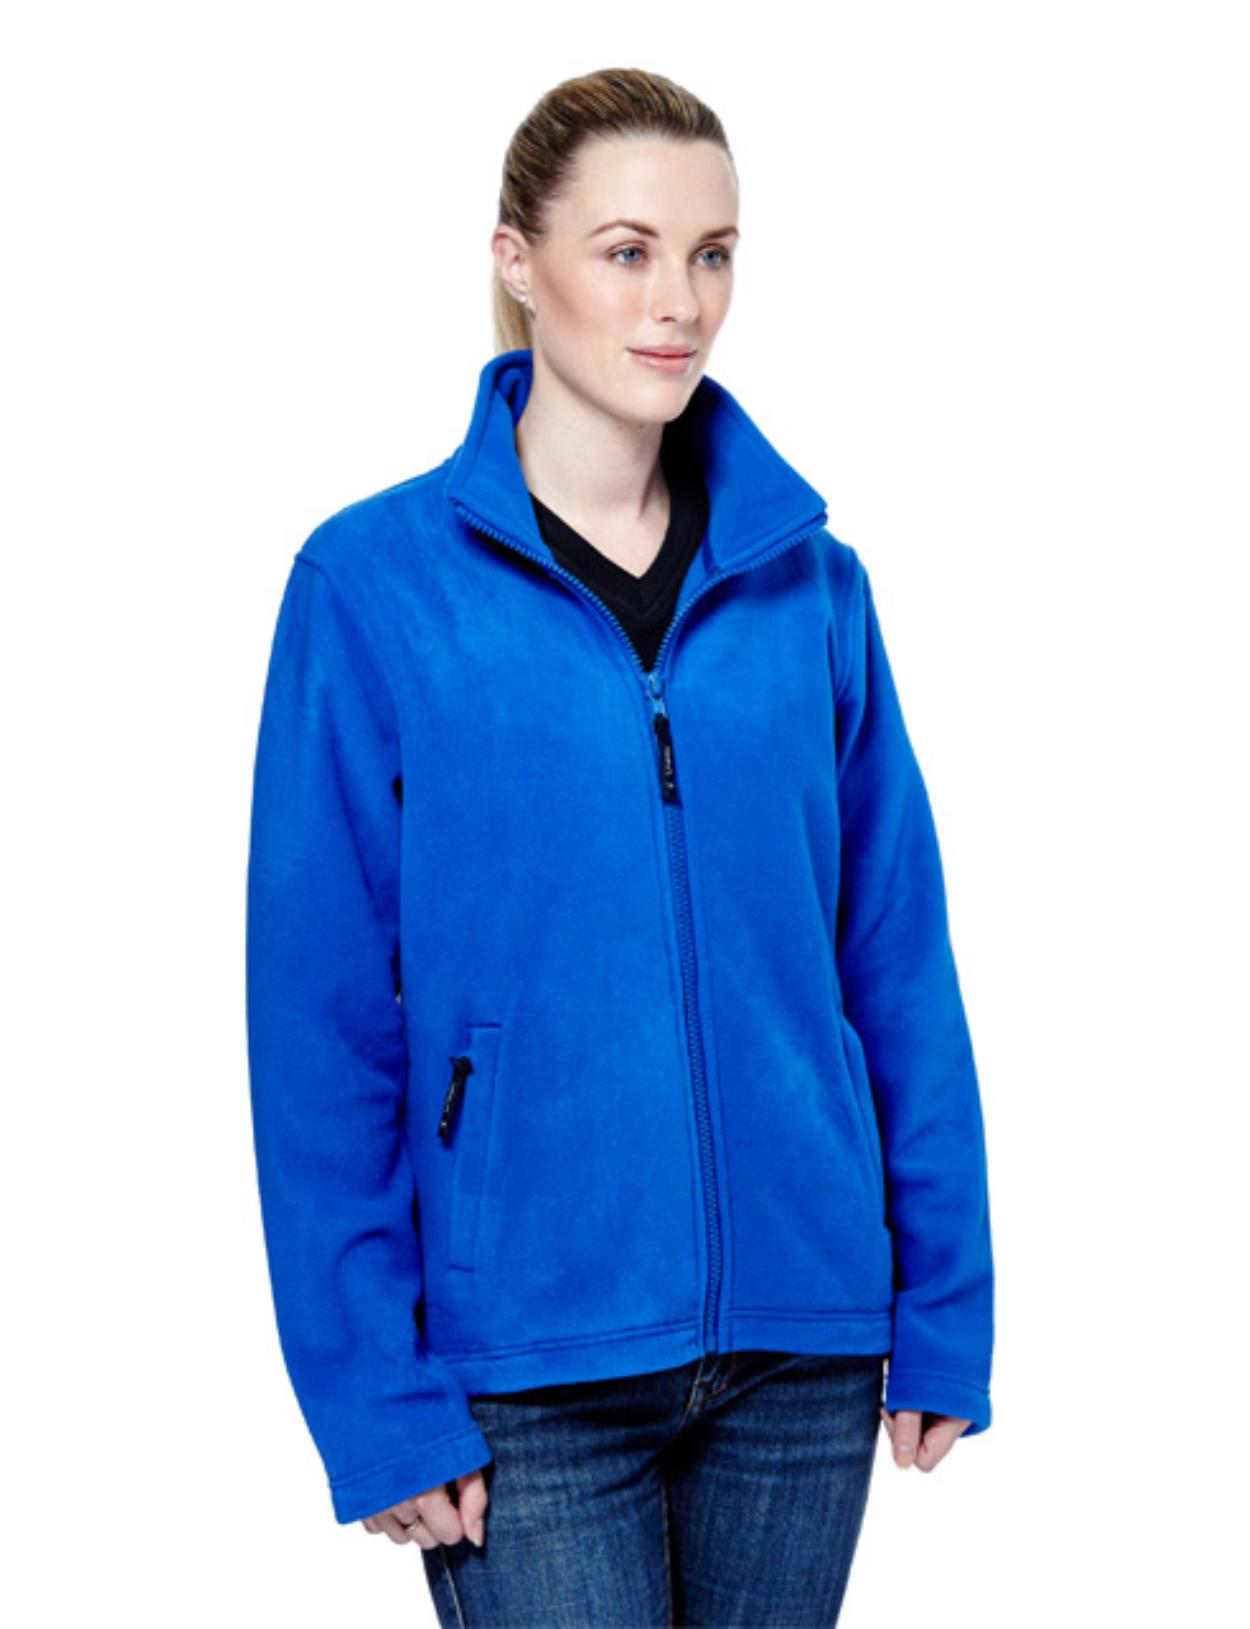 UC608 - Ladies Classic Full Zip Fleece